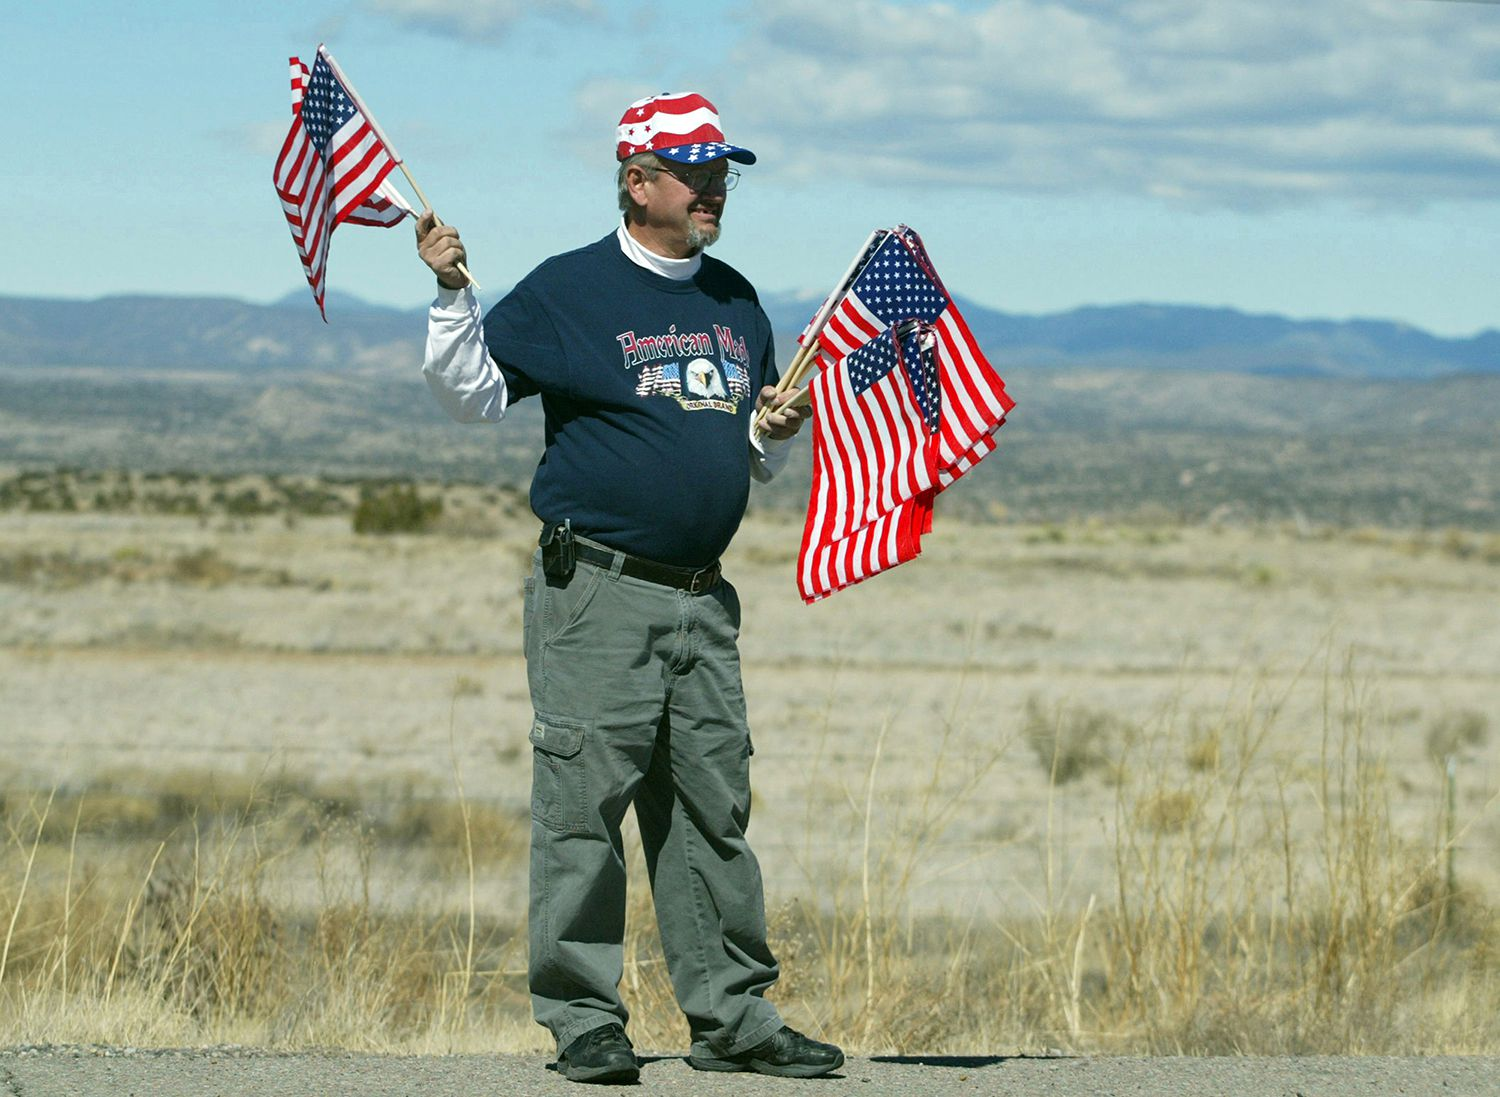 Memorial Day Weekend Events In Albuquerque, New Mexico